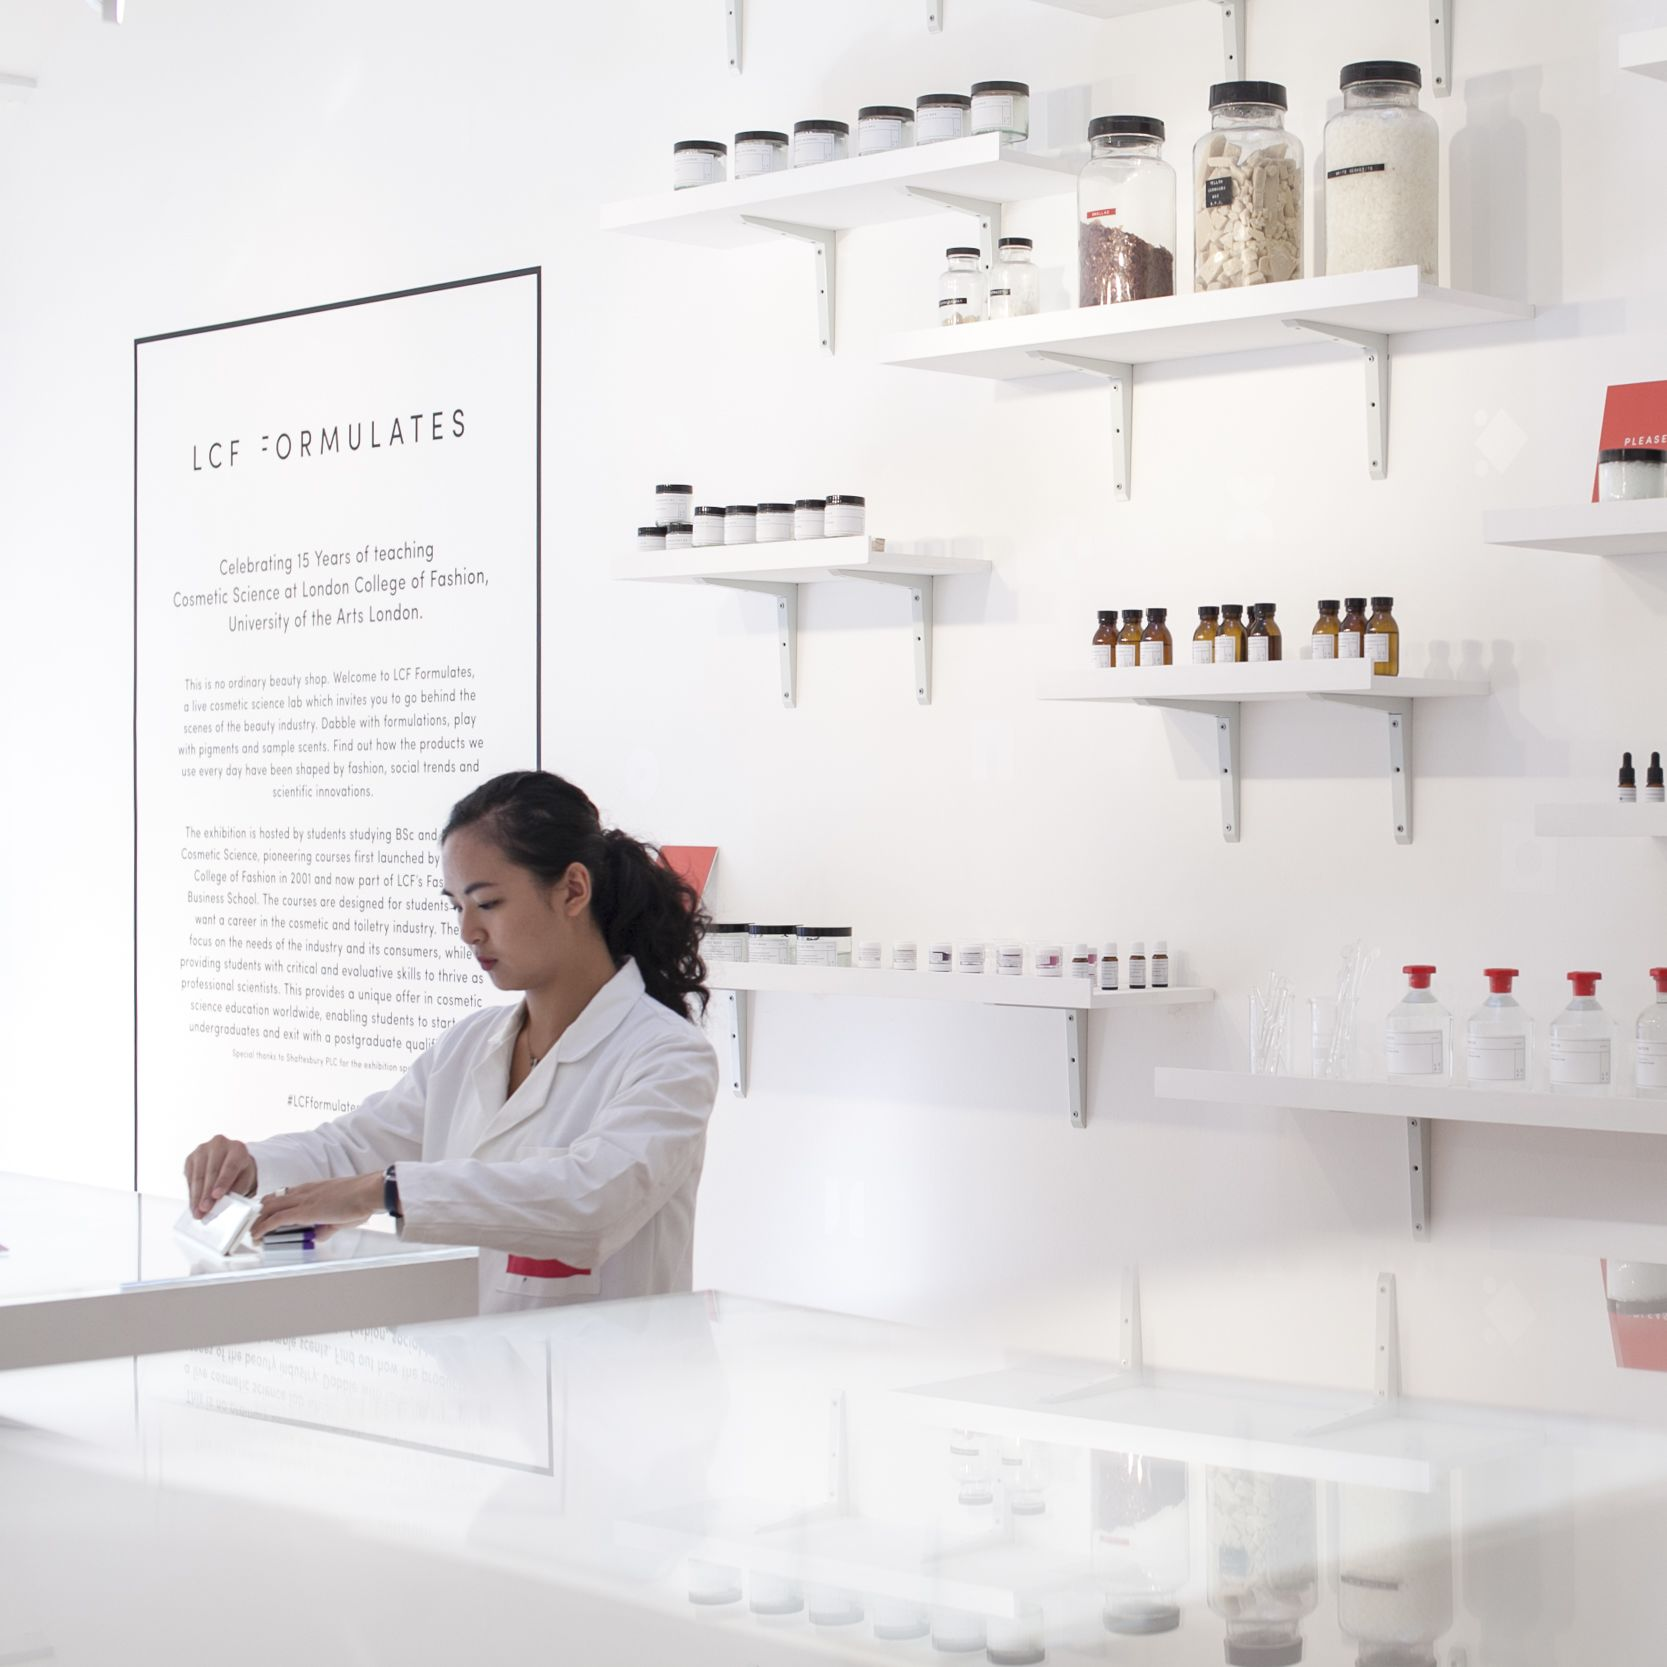 Woman in white lab coat with shelves of cosmetics behind her. LCF Formulates Cosmetic Science exhibition, Fashion Business School Summit, Kingly Court. Copyright holder: Emmi Hyyppa